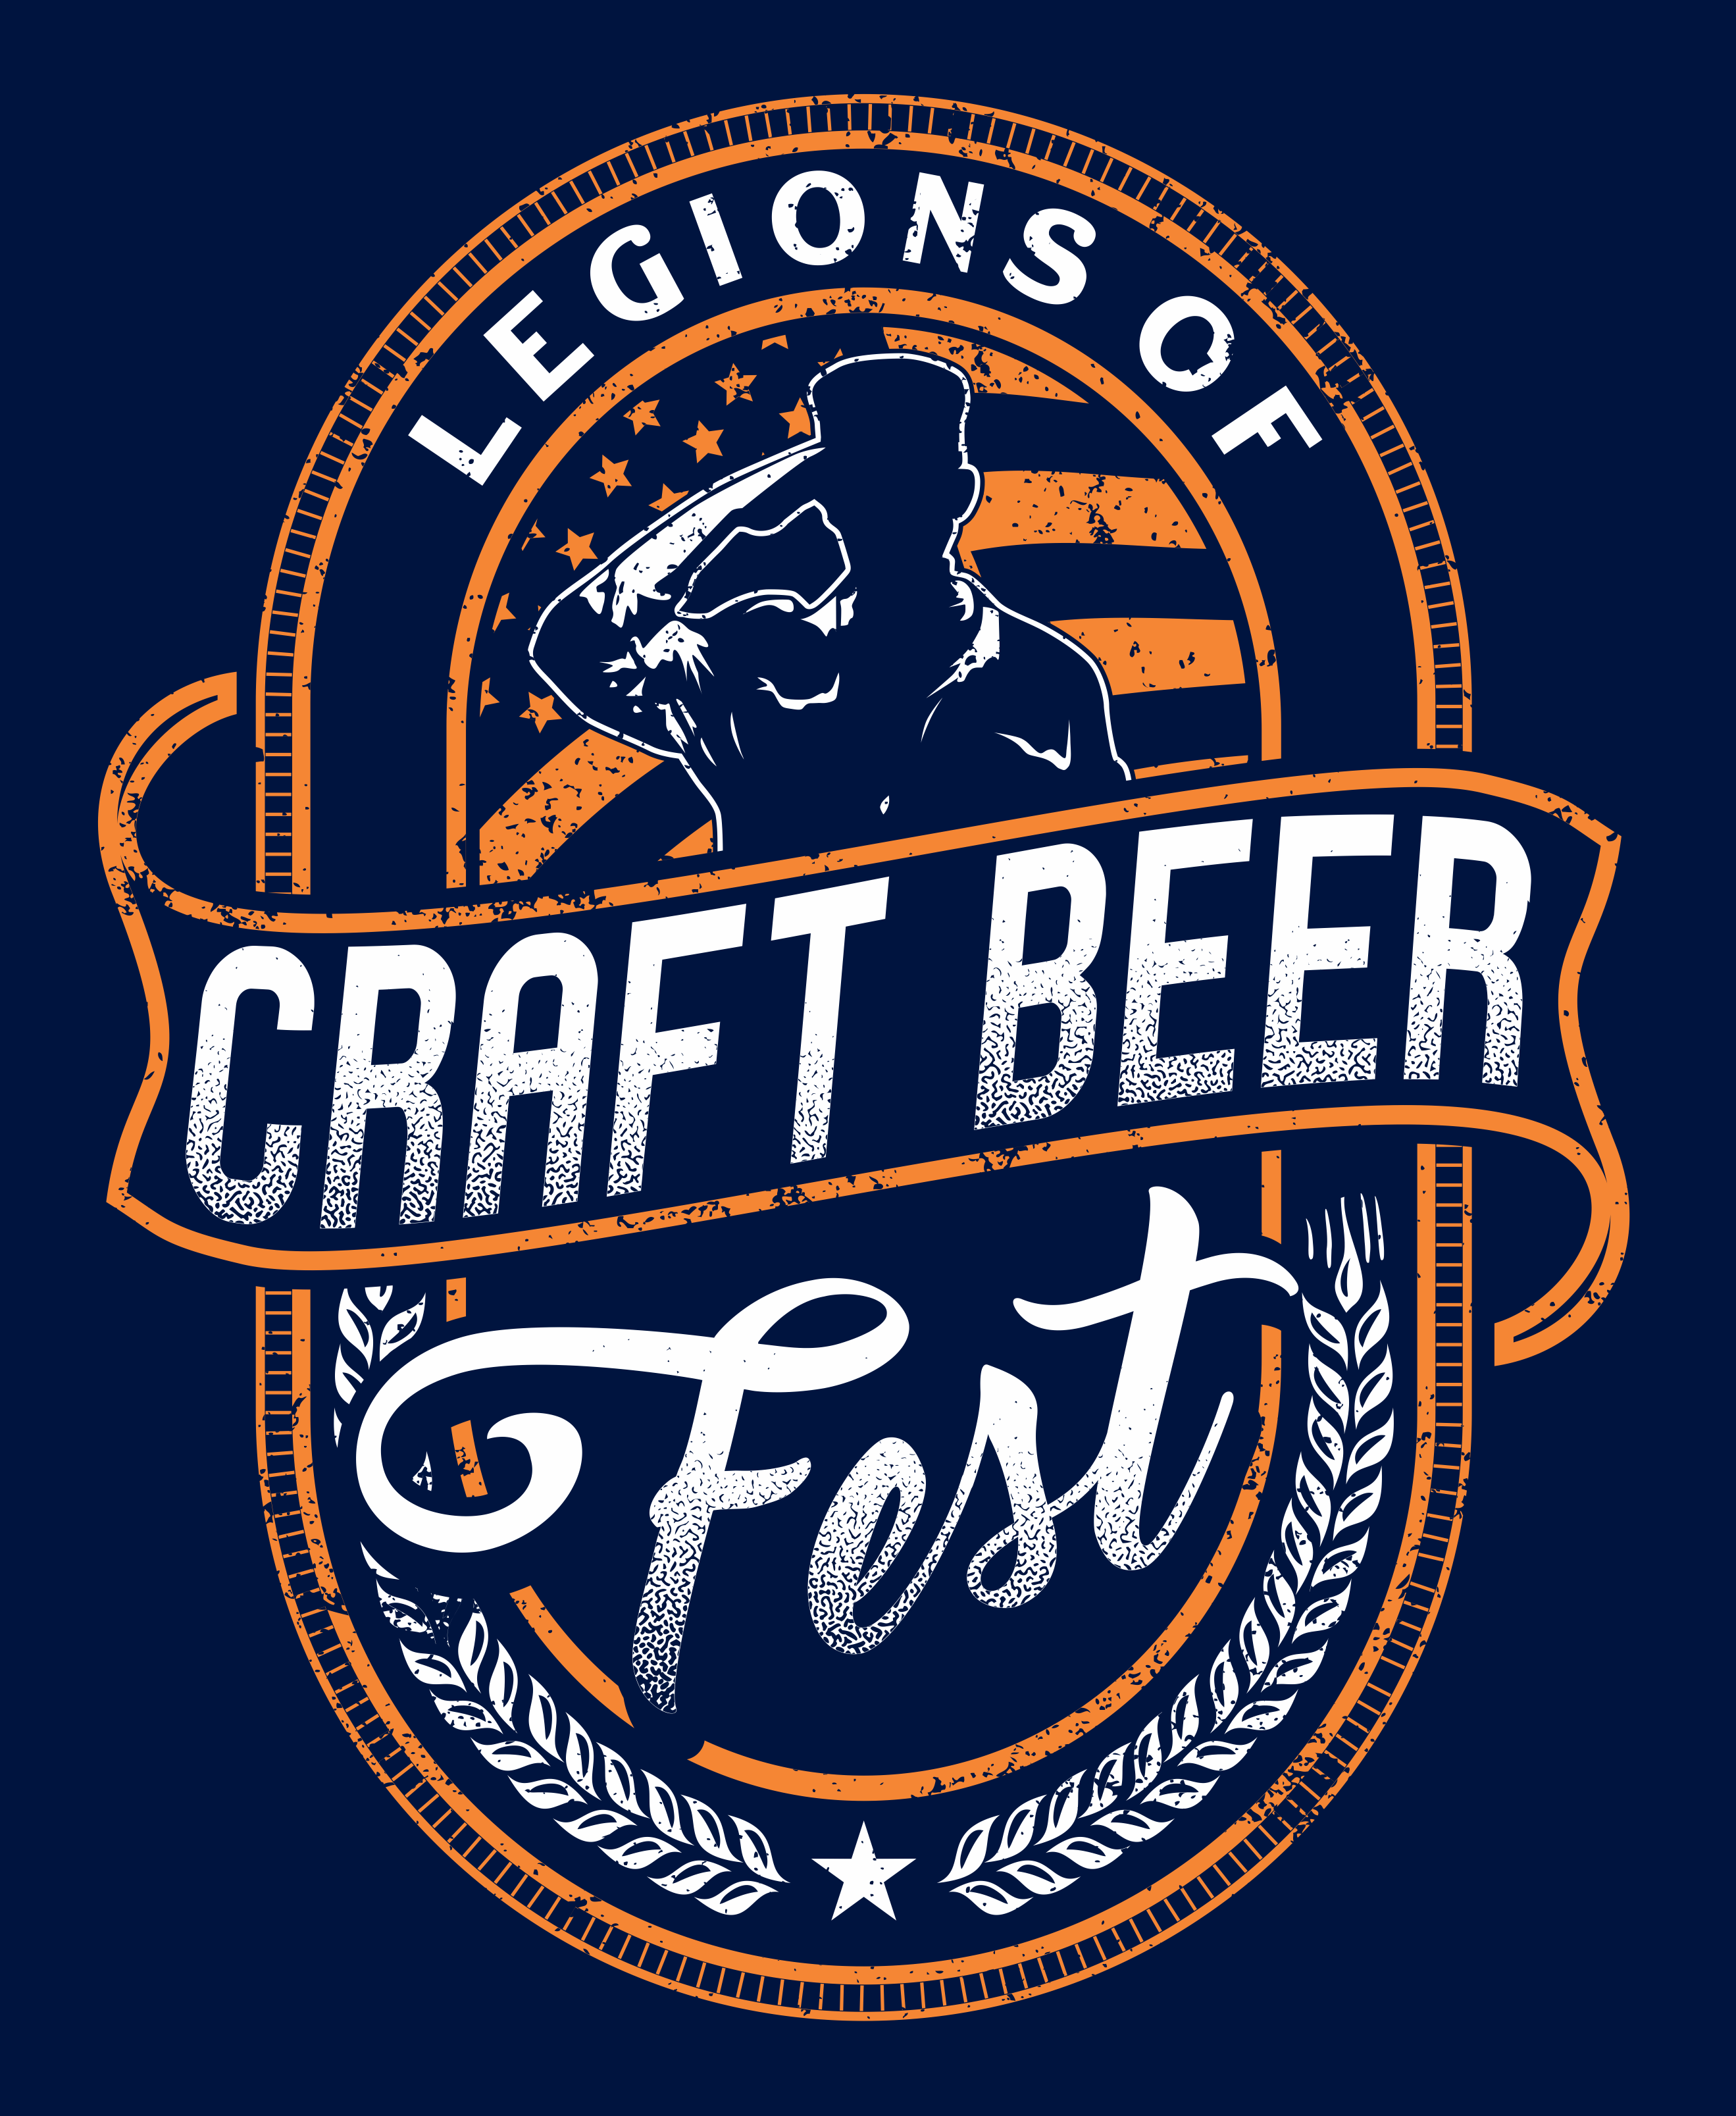 4th Annual Legions of Craft Beer Festival Fundraiser in Gurnee to Support Local Veterans Organizations